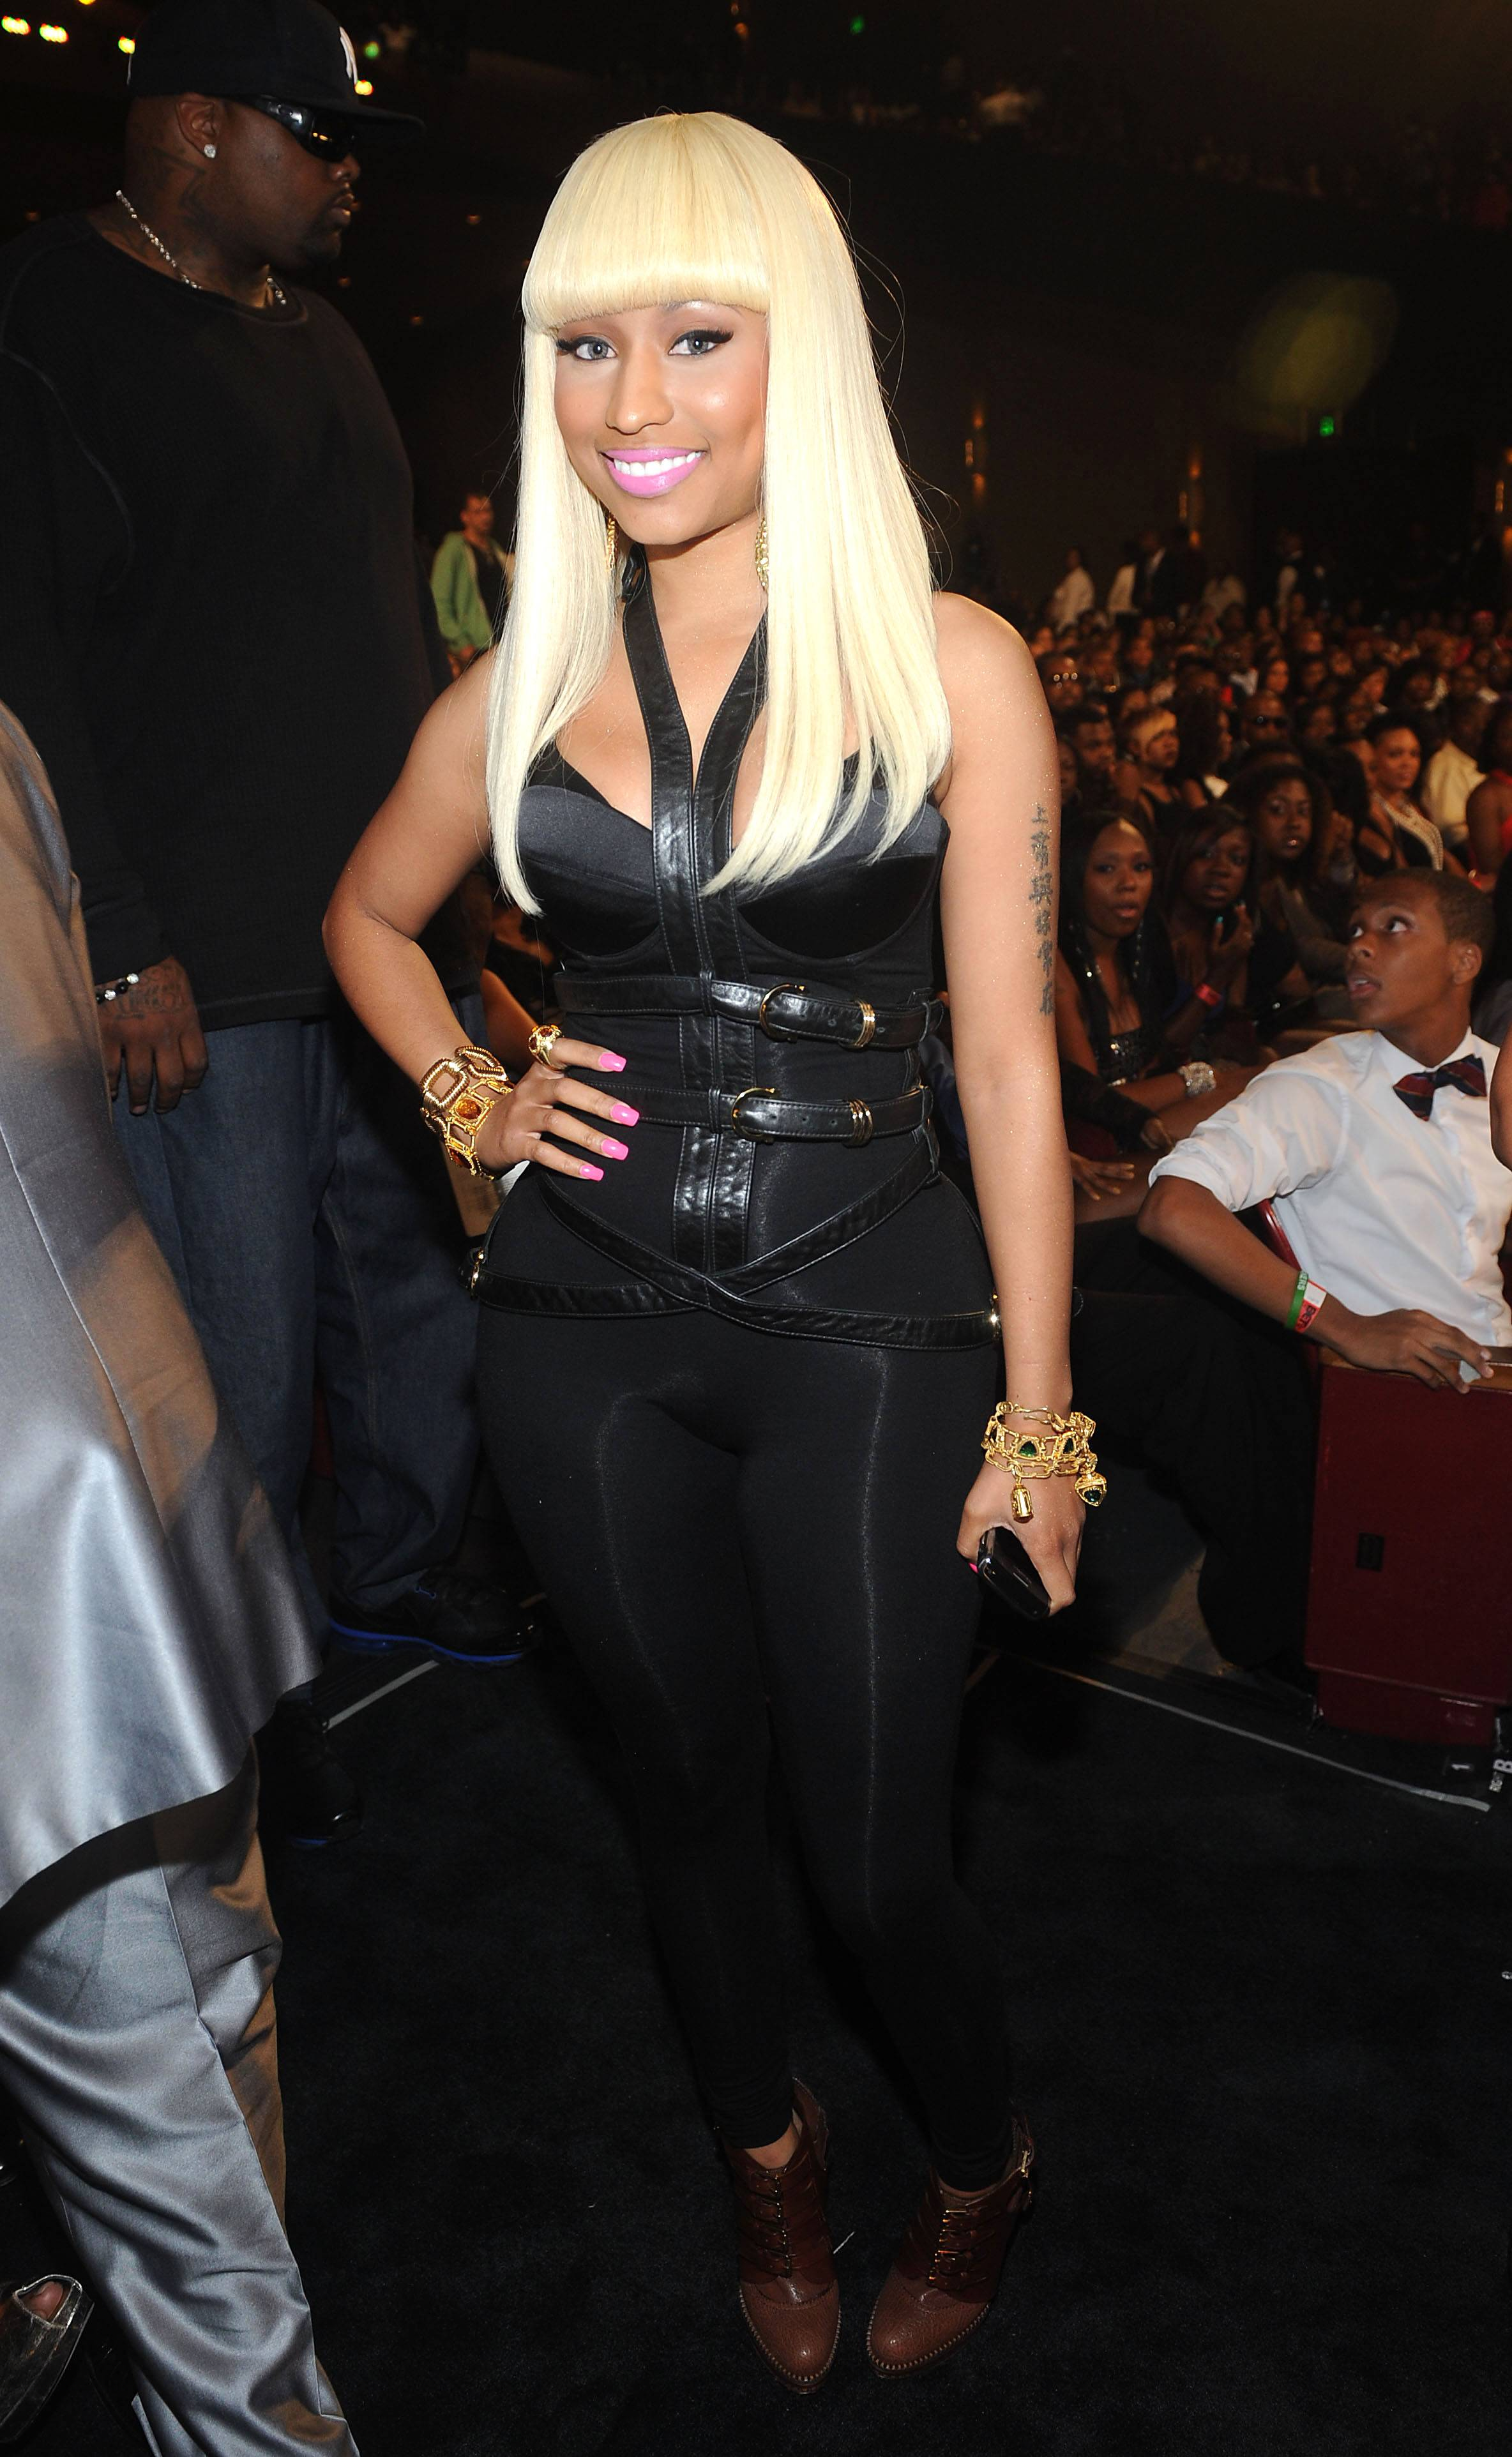 """""""Super Bass"""" Hits No. 1, Solidifies Nicki's Spot in the Game - Although Nicki'sPink Friday was a record-breaking success that spawned several hits, it wasn't until June 2011 that she scored her first solo Top 10 hit with """"Super Bass,"""" off the deluxe version of the LP. The accomplishment solidified the rapstress' potential for longevity.(Photo: Brad Barket/PictureGroup)"""